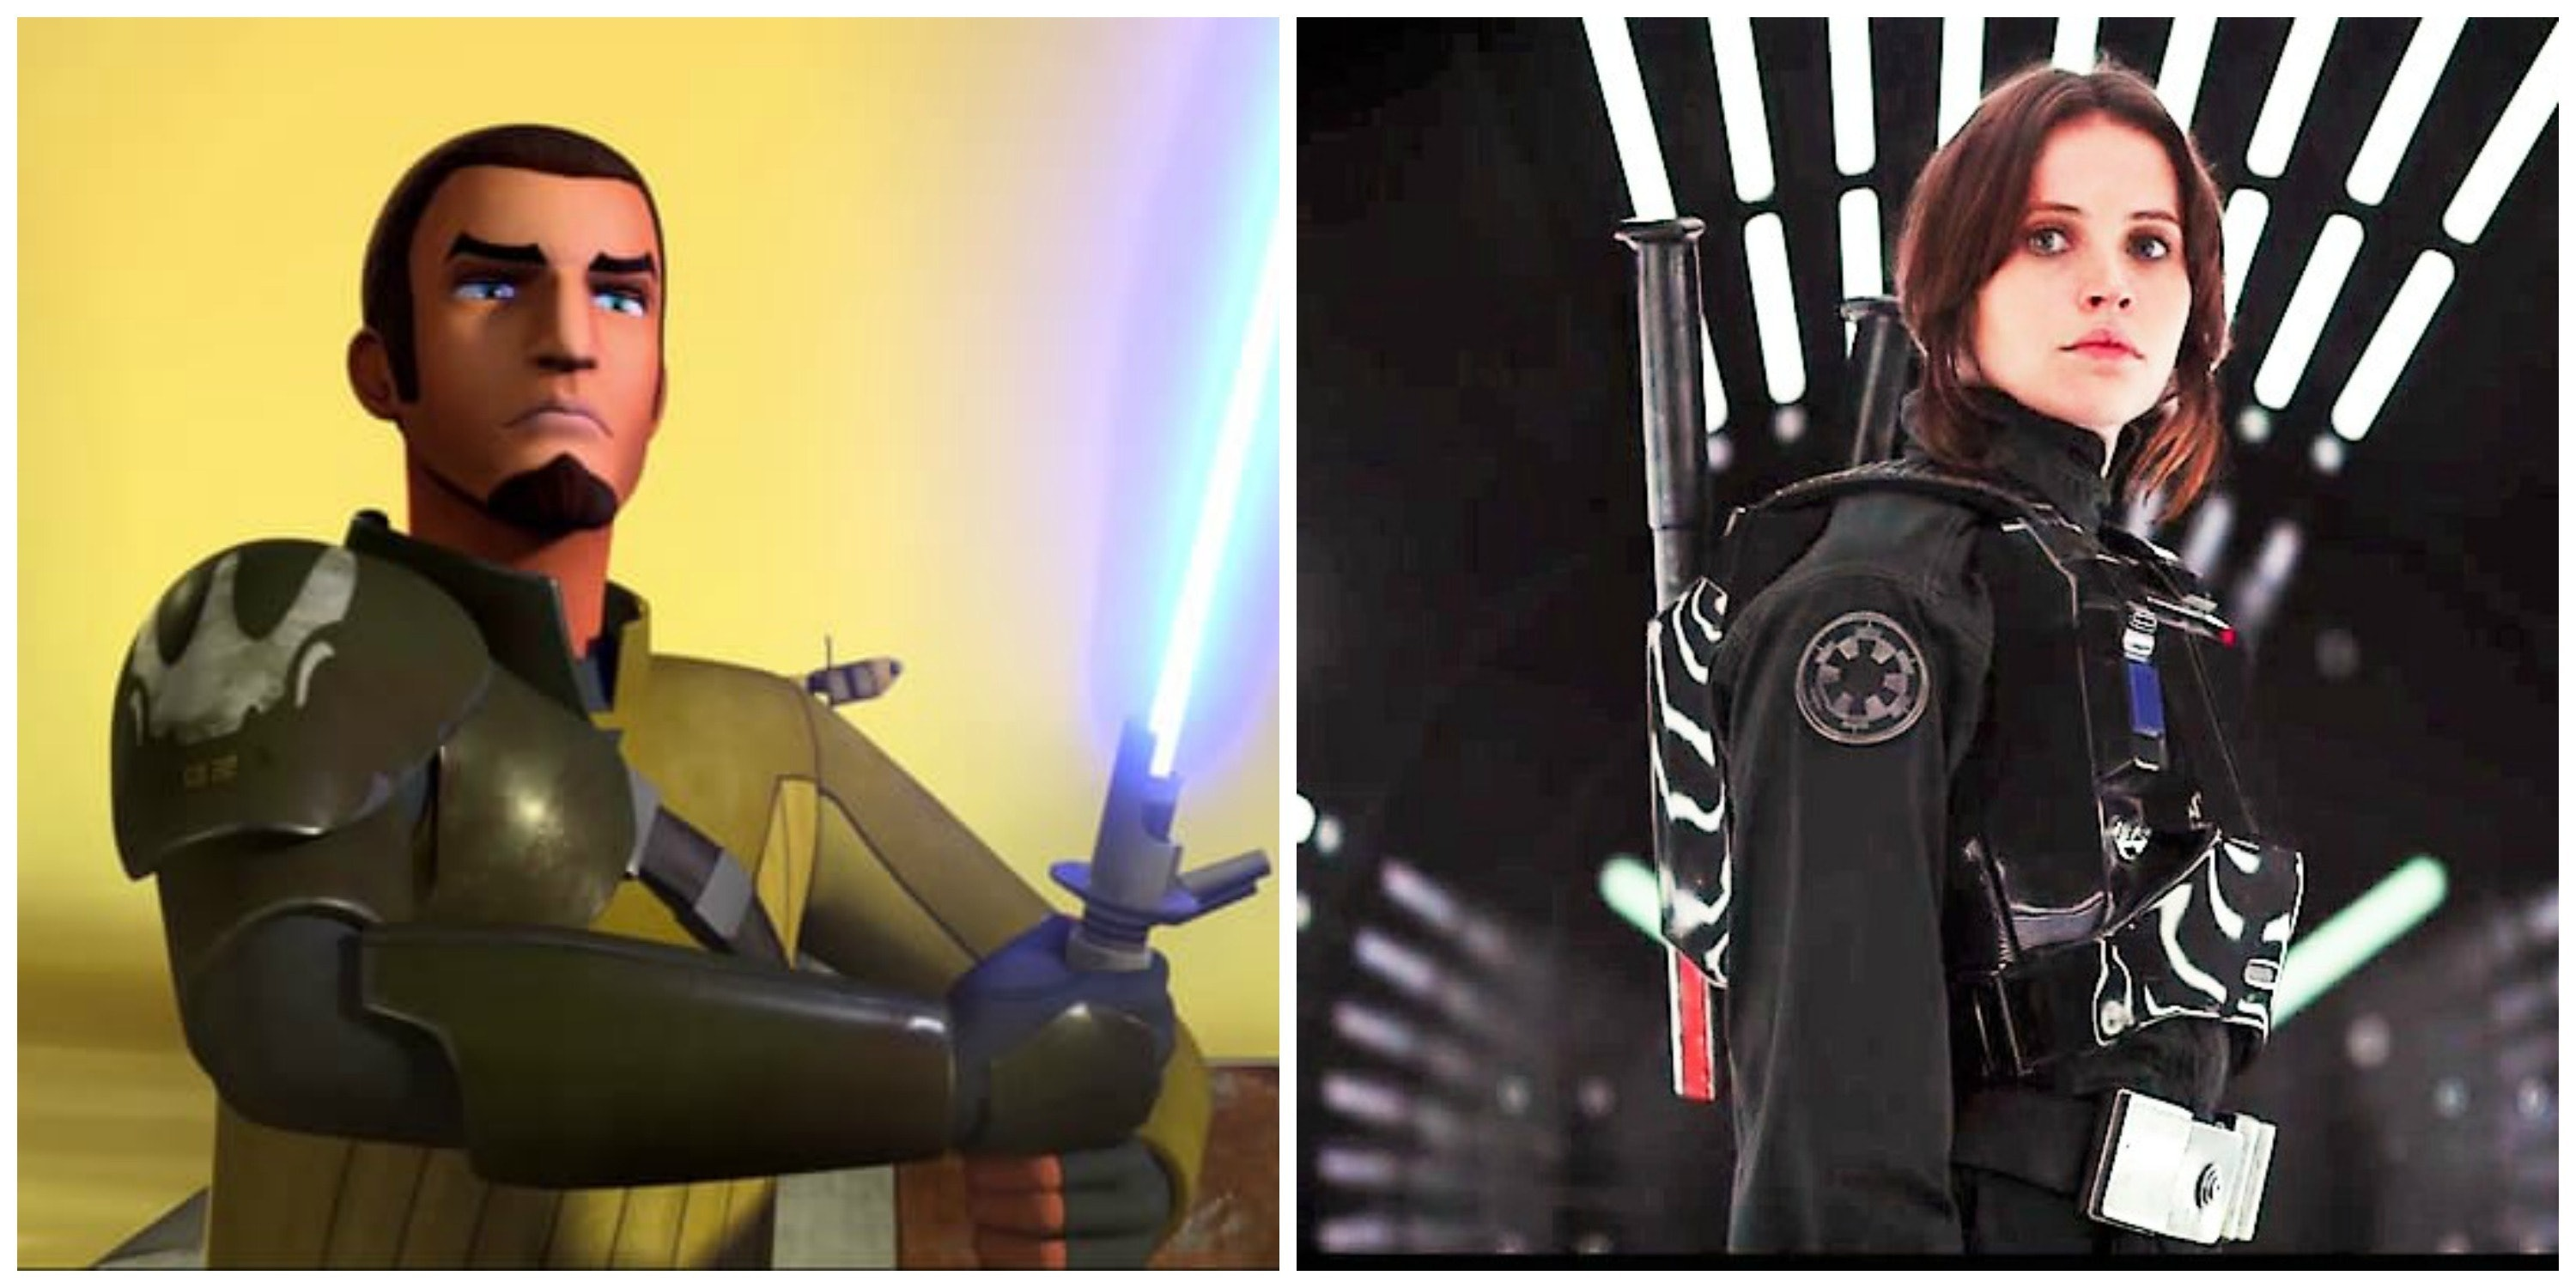 'Star Wars Rebels' Will Be Referenced in 'Rogue One'